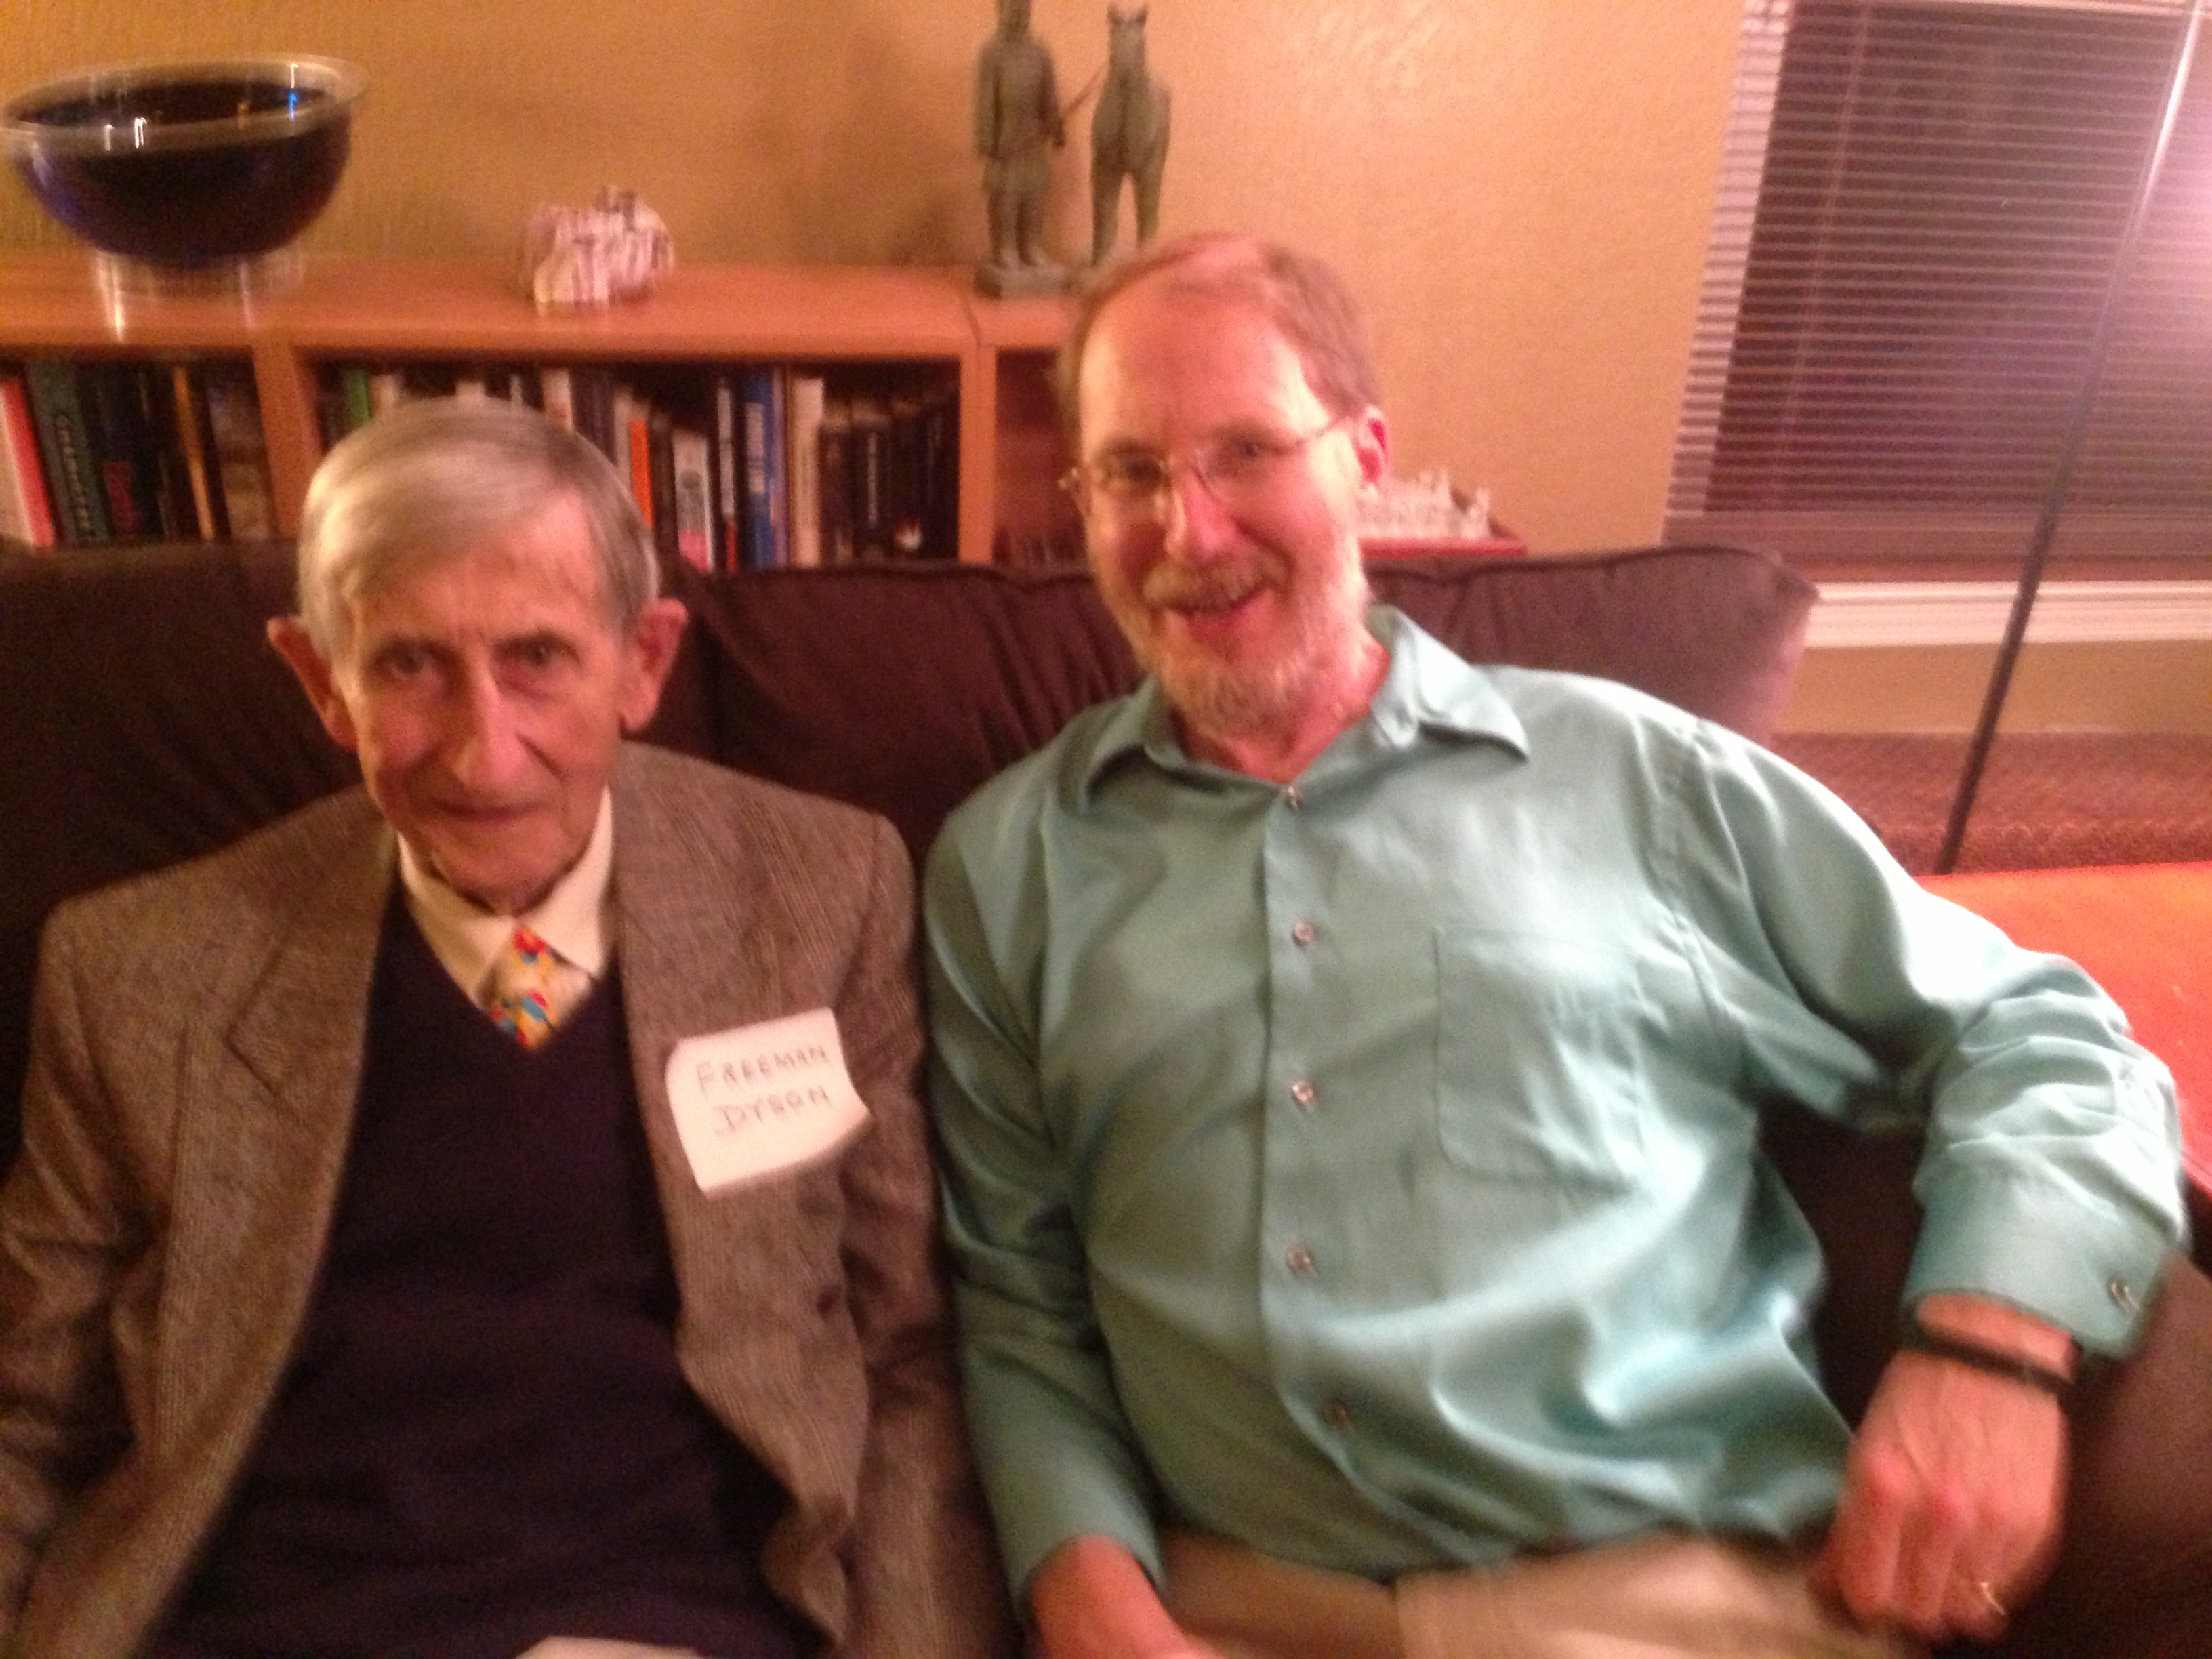 Freeman Dyson and Geoffrey Landis